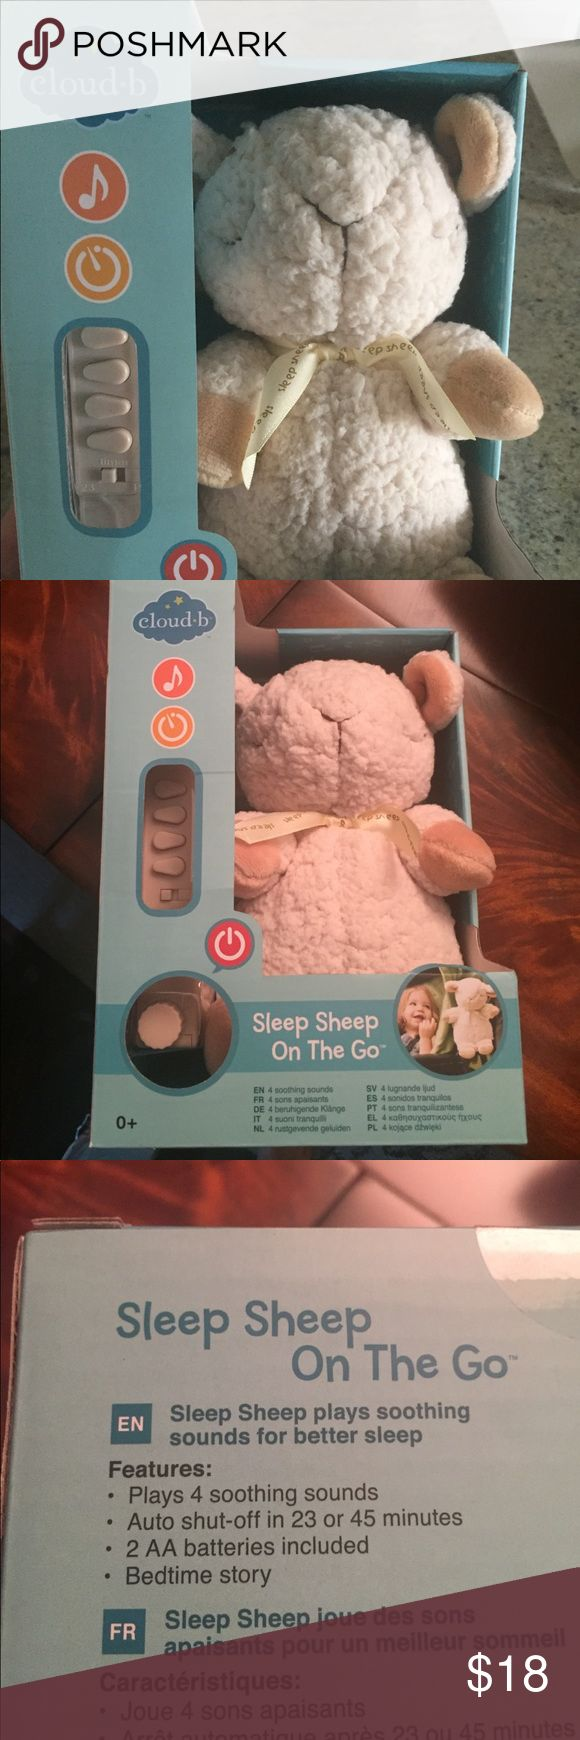 Cloud b sleep sheep on the go New in box cloud b sleep sheep on the go.  Portable sleep machine/white noise for kids. Other